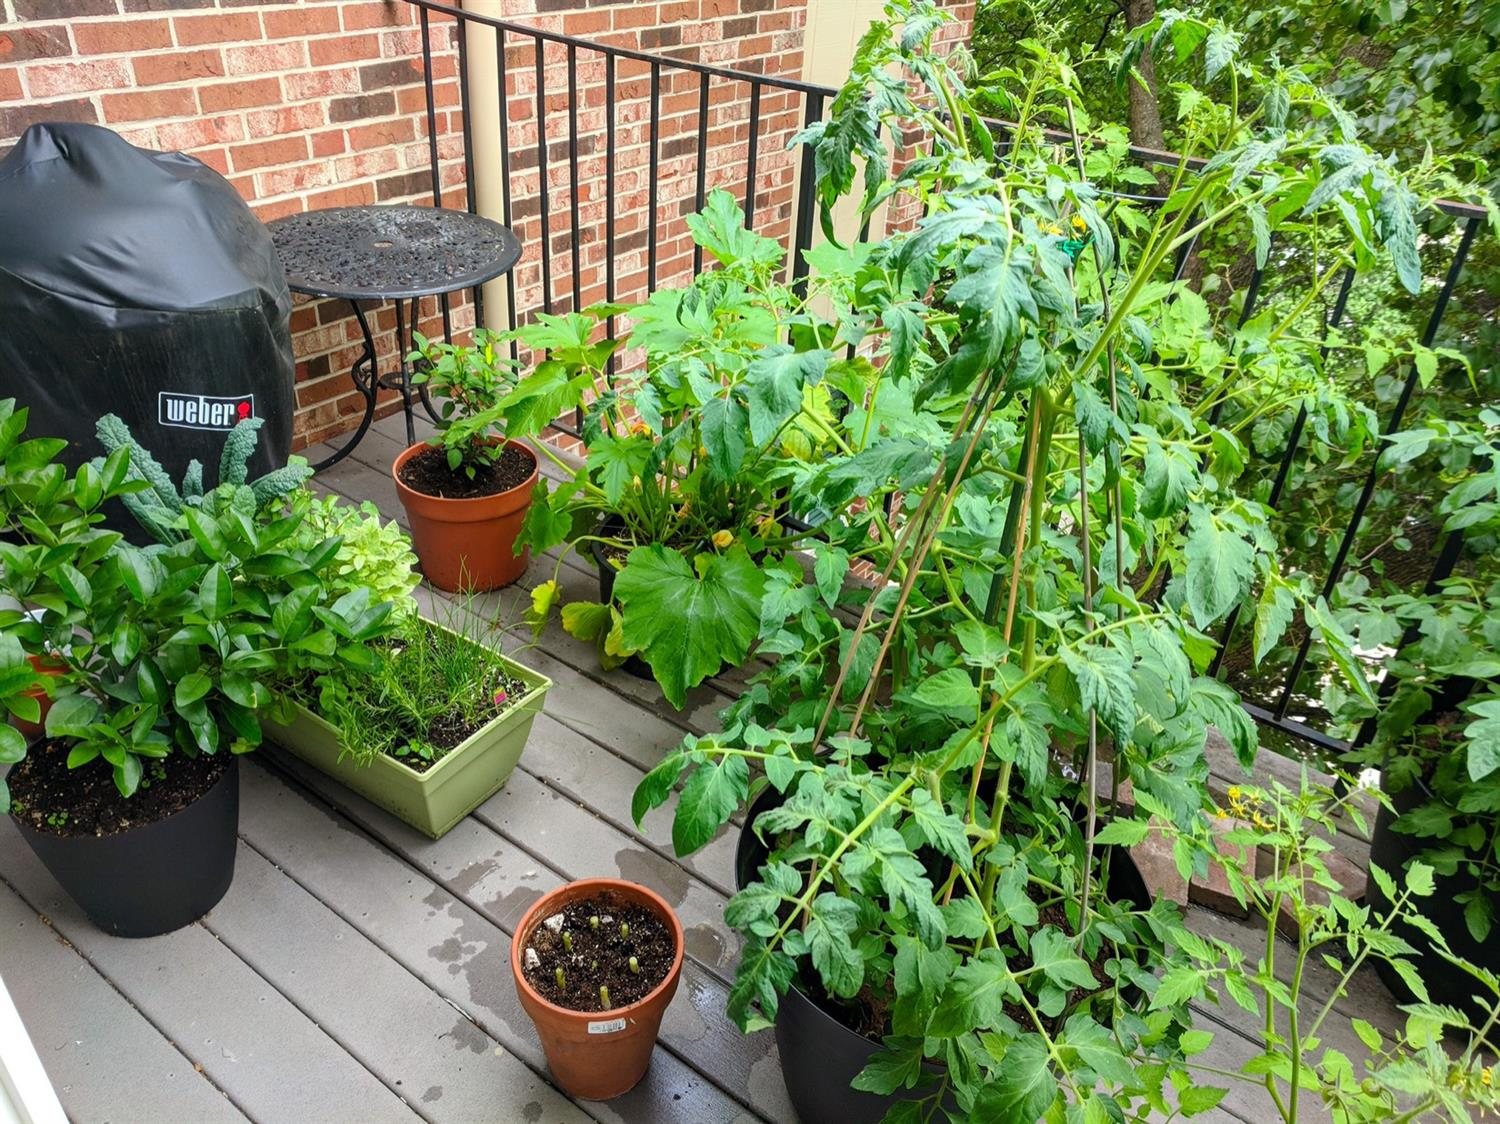 The private balcony is also a great place for container grown veggies!  Your own garden in the city!  The light here is perfect.